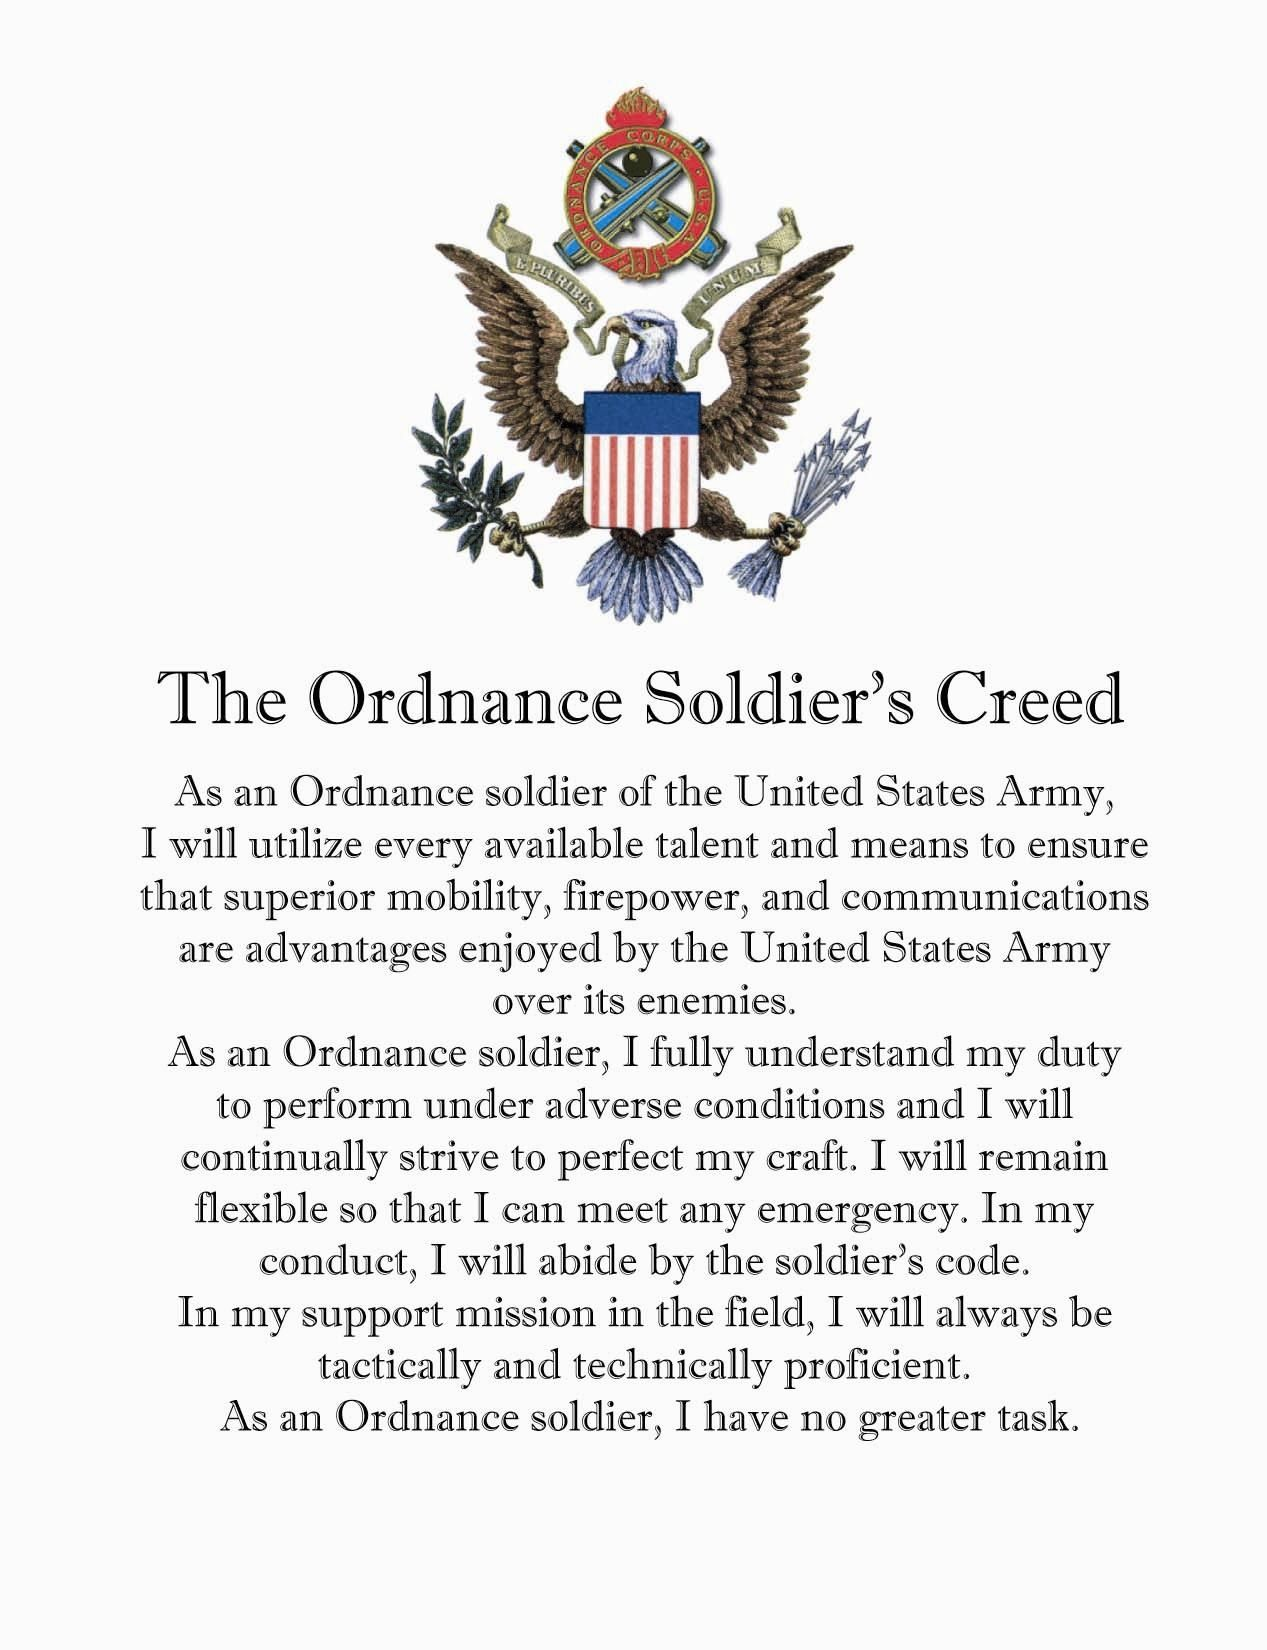 The NCO Creed.. what does it mean to you? How do you interpret it? Do you live by it as an NCO?